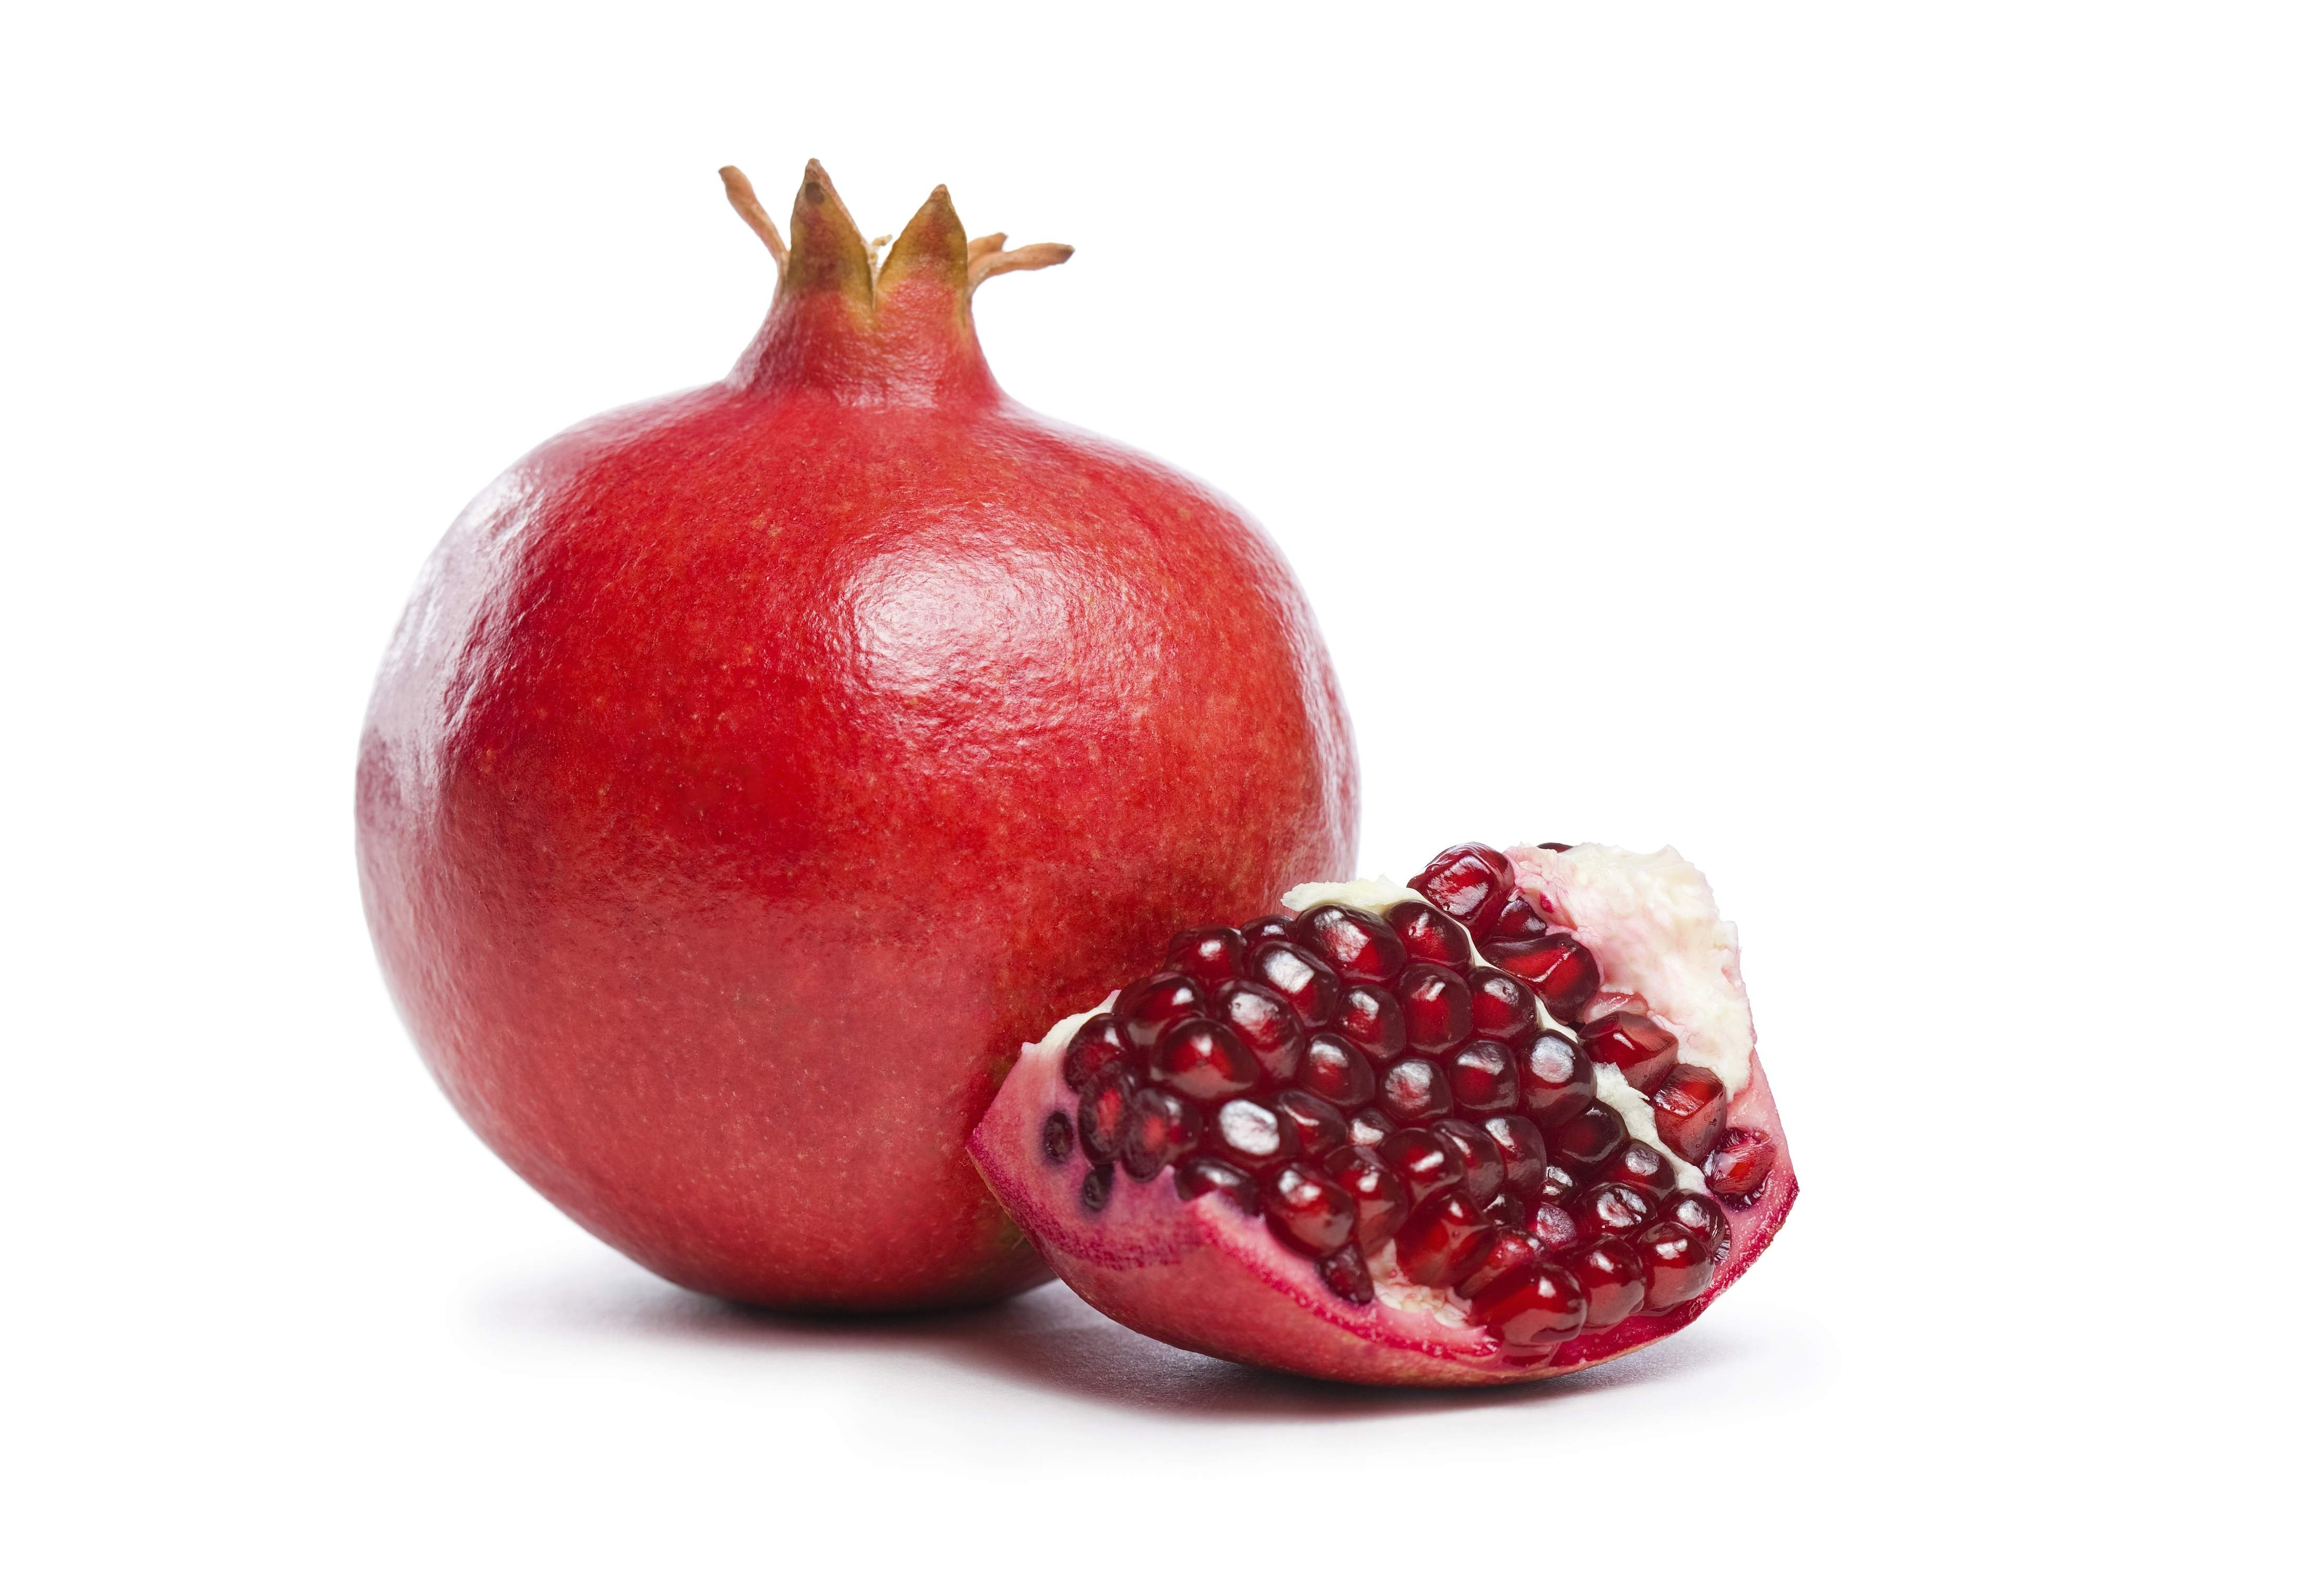 formerly reliable pomegranate tree not producing hort coco uc